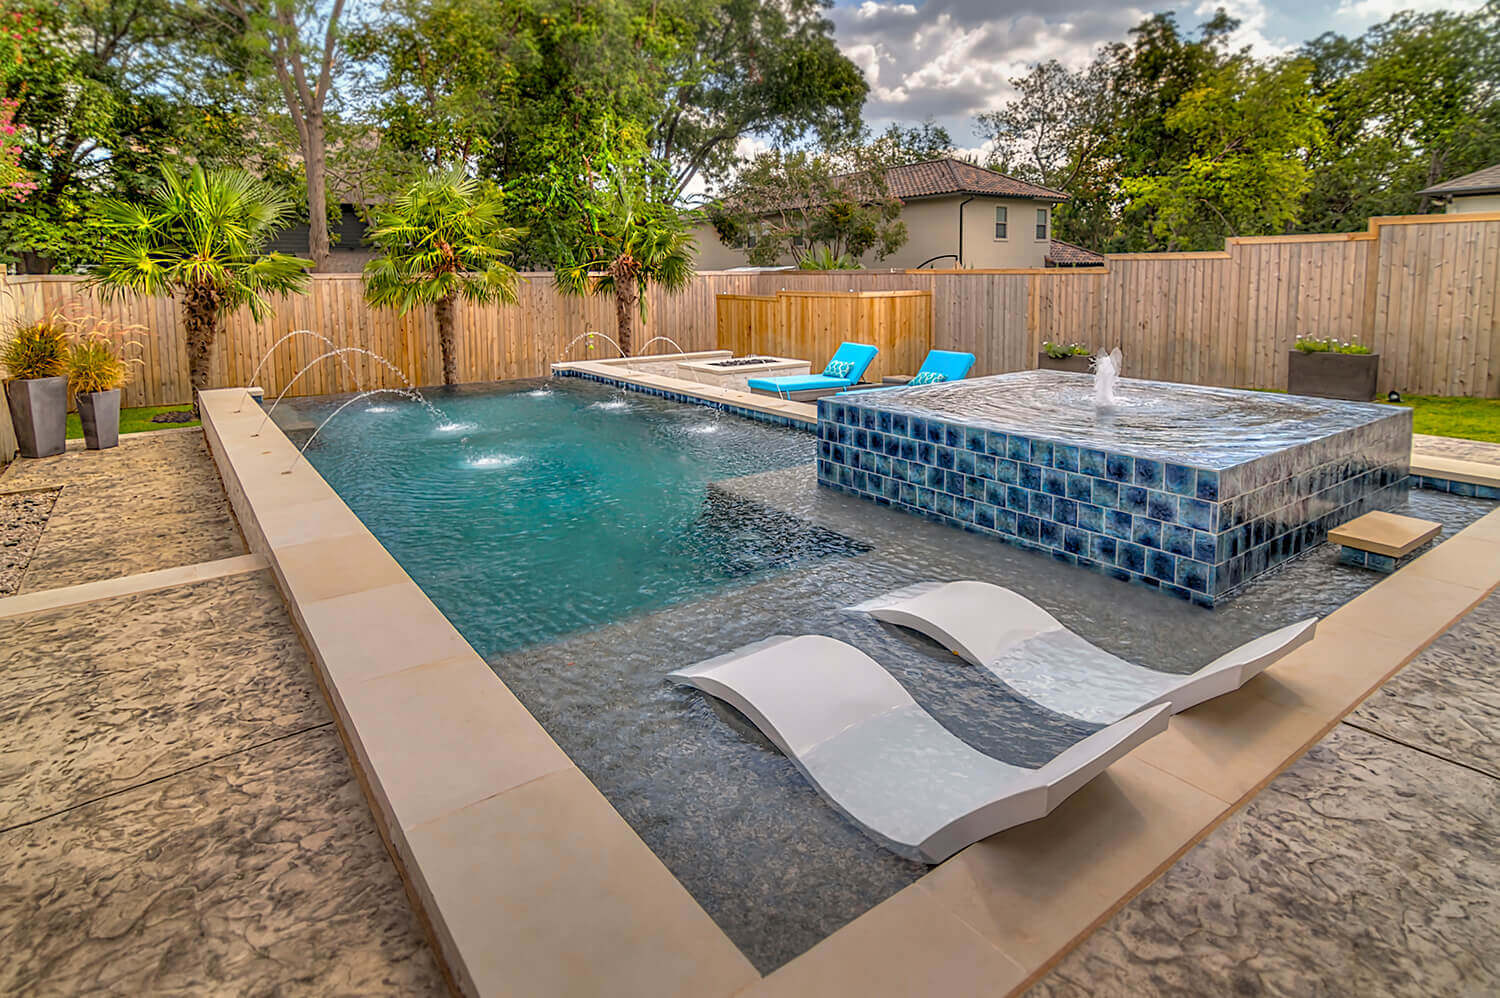 Water Features That Perfectly Complement a Modern Geometric Pool